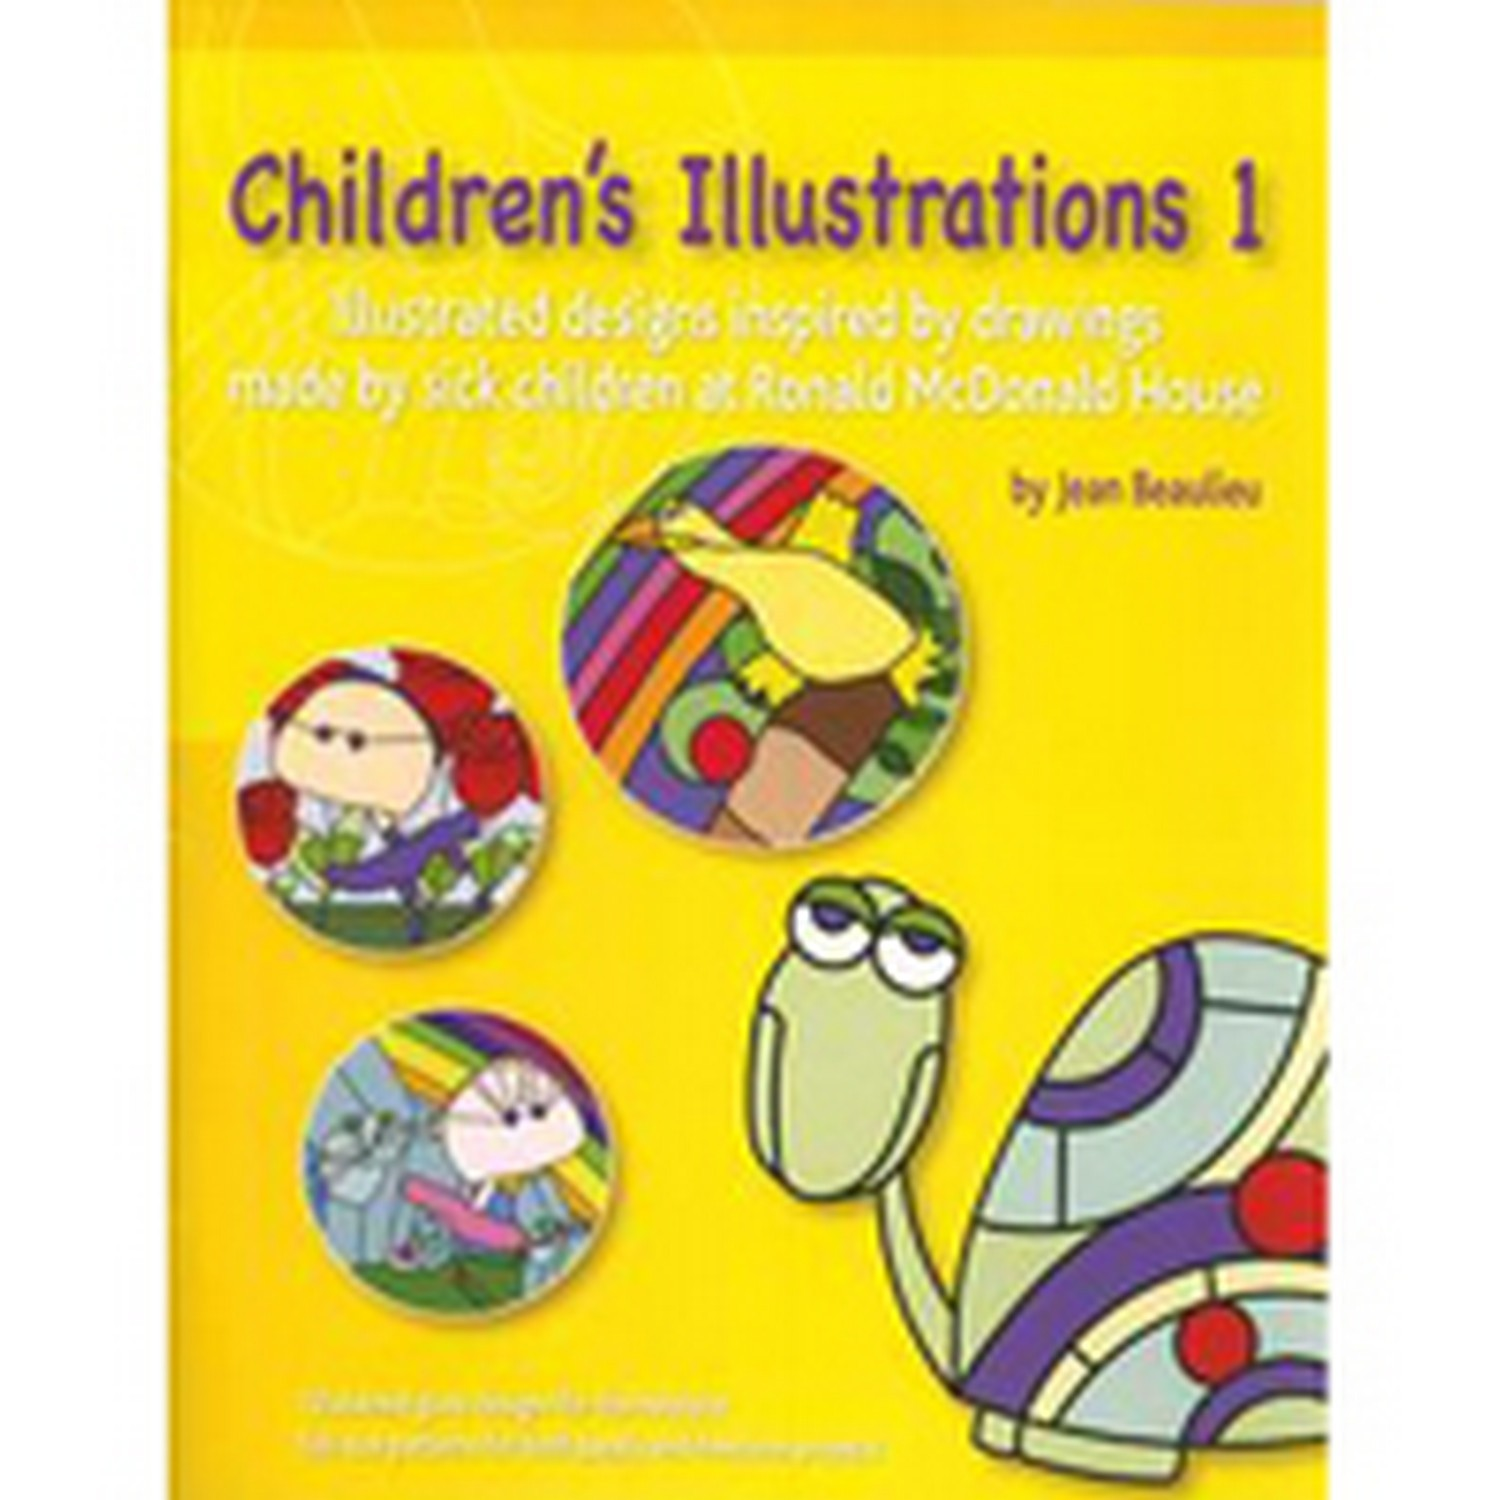 (72A091) CHILDRENS ILLUSTRATIONS